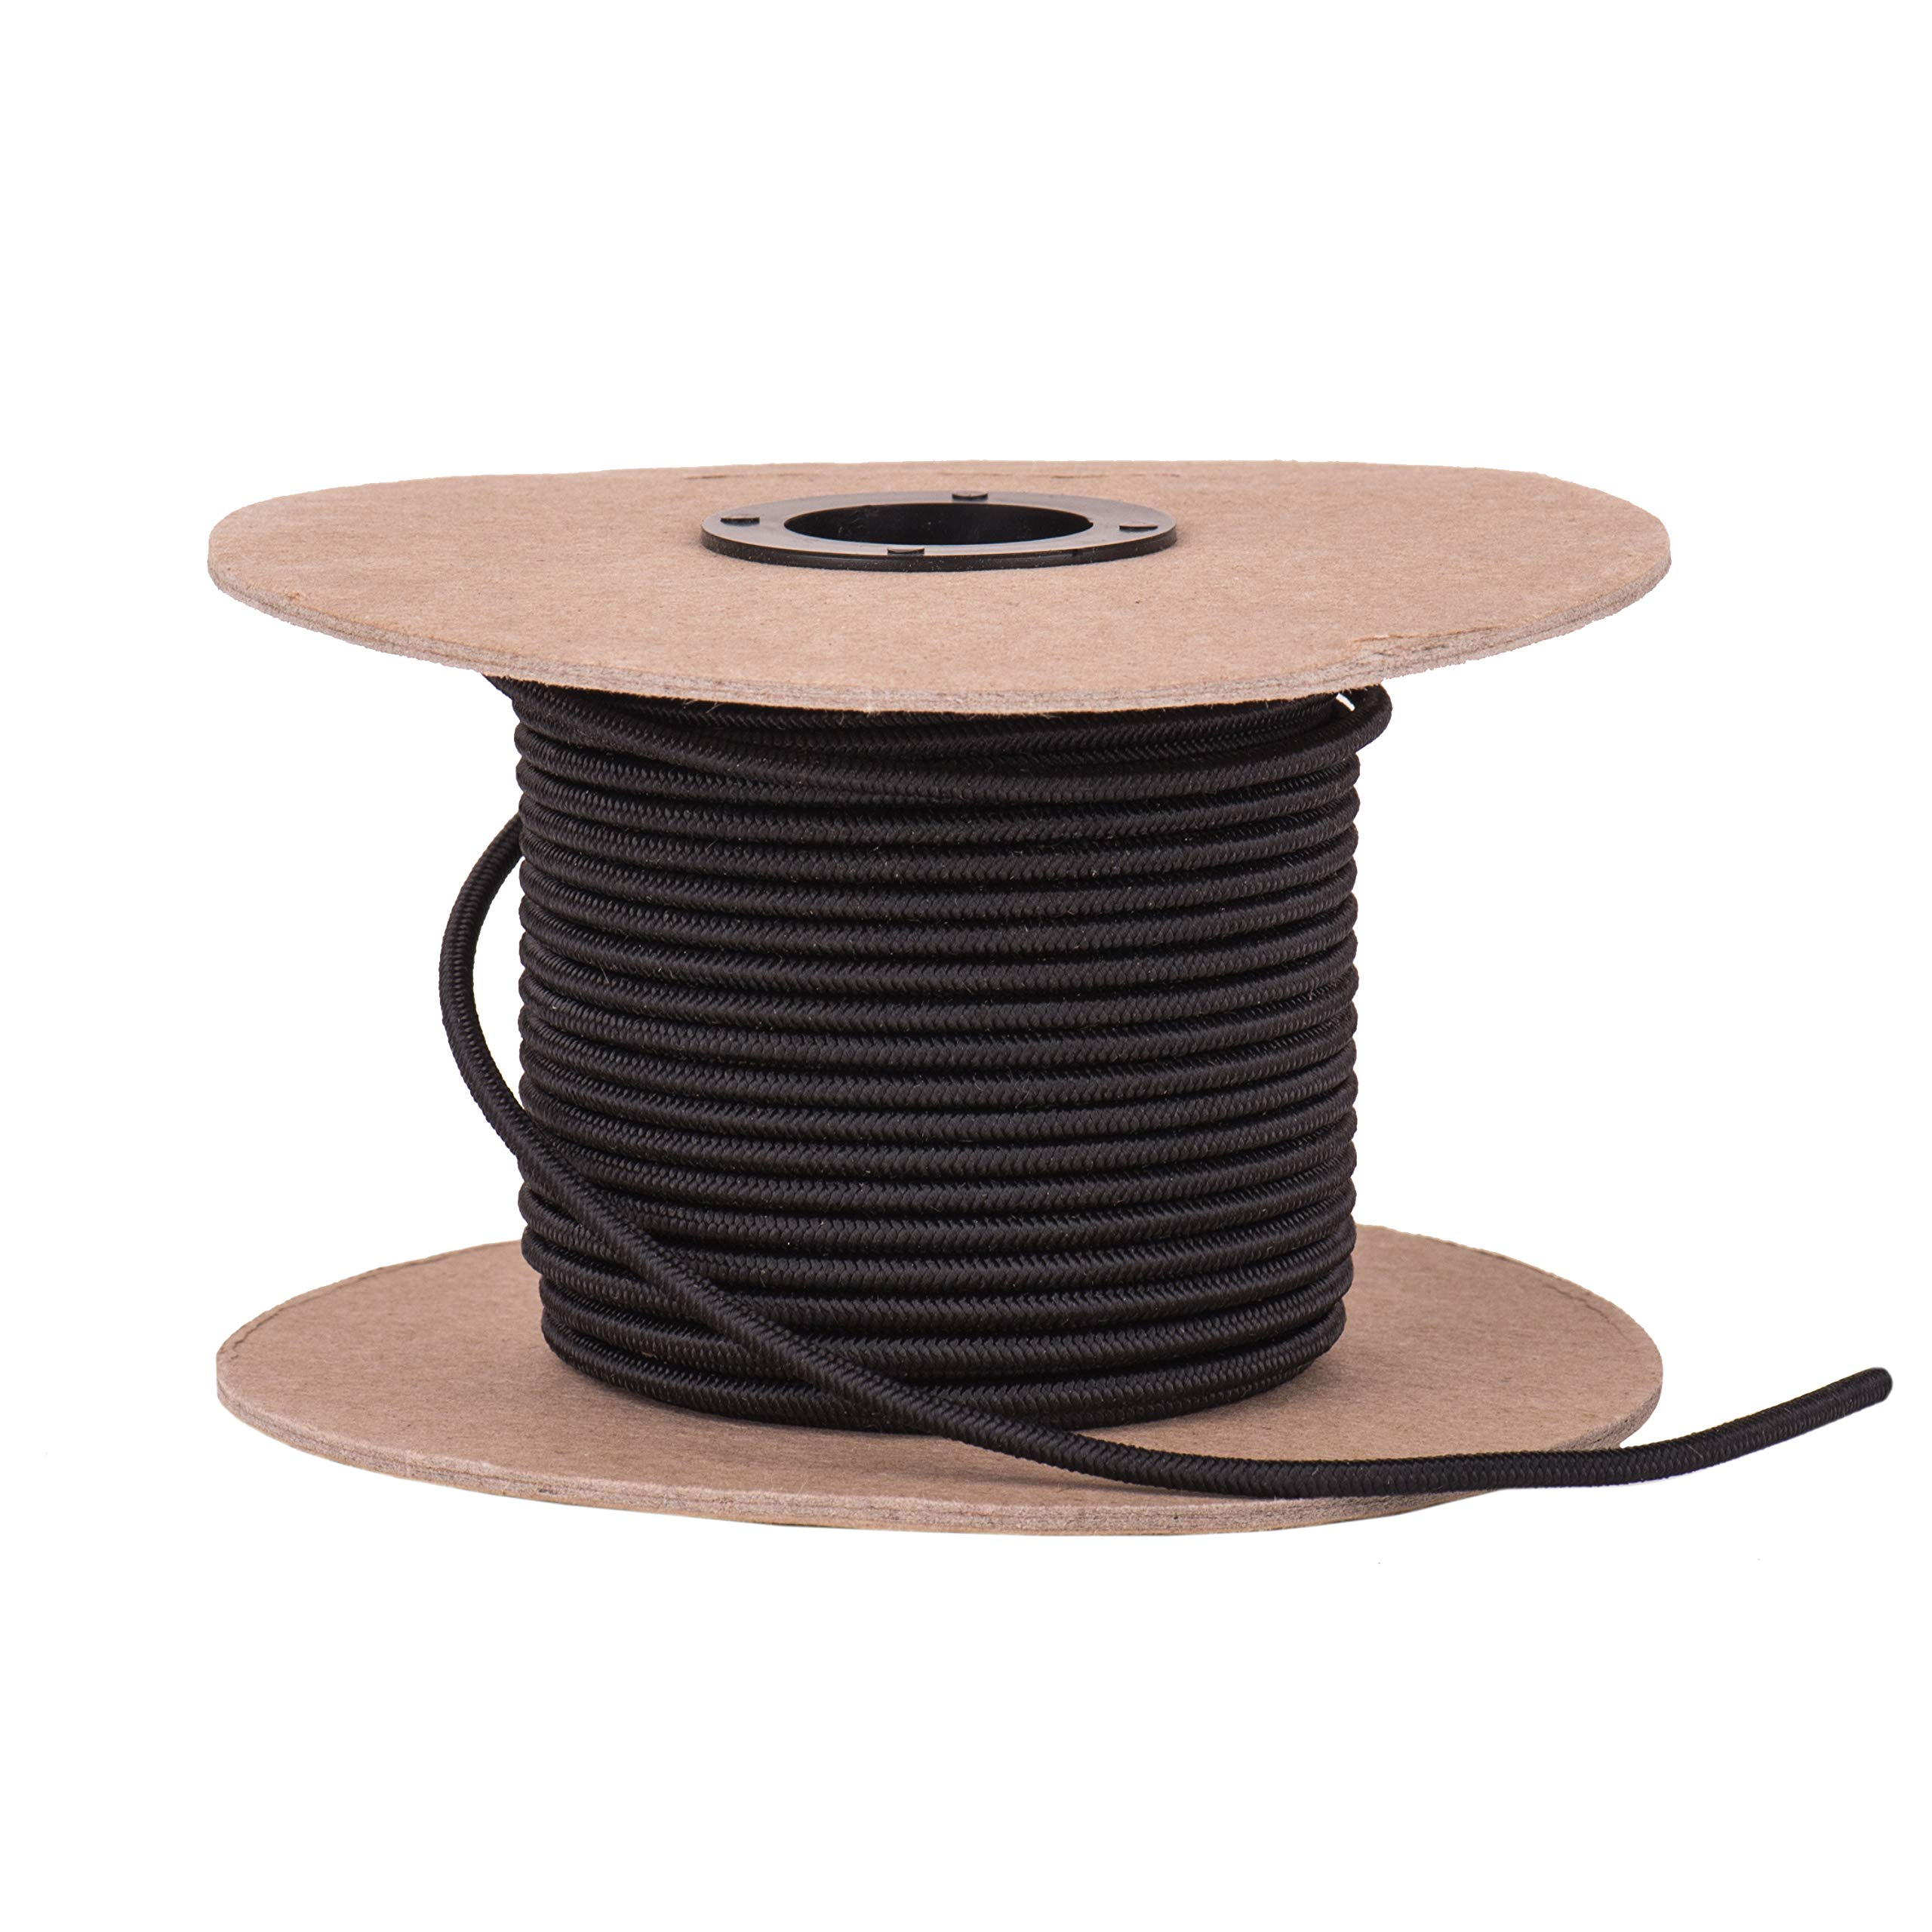 """Elastic Bungee Cord. 3/16"""" and 1/4.'' 50 and 100 Foot Spools. Weather and Abrasion Resistant. Used for Tie Downs, Crafting, DIY Projects. Black Shock Cord. Made in the USA"""